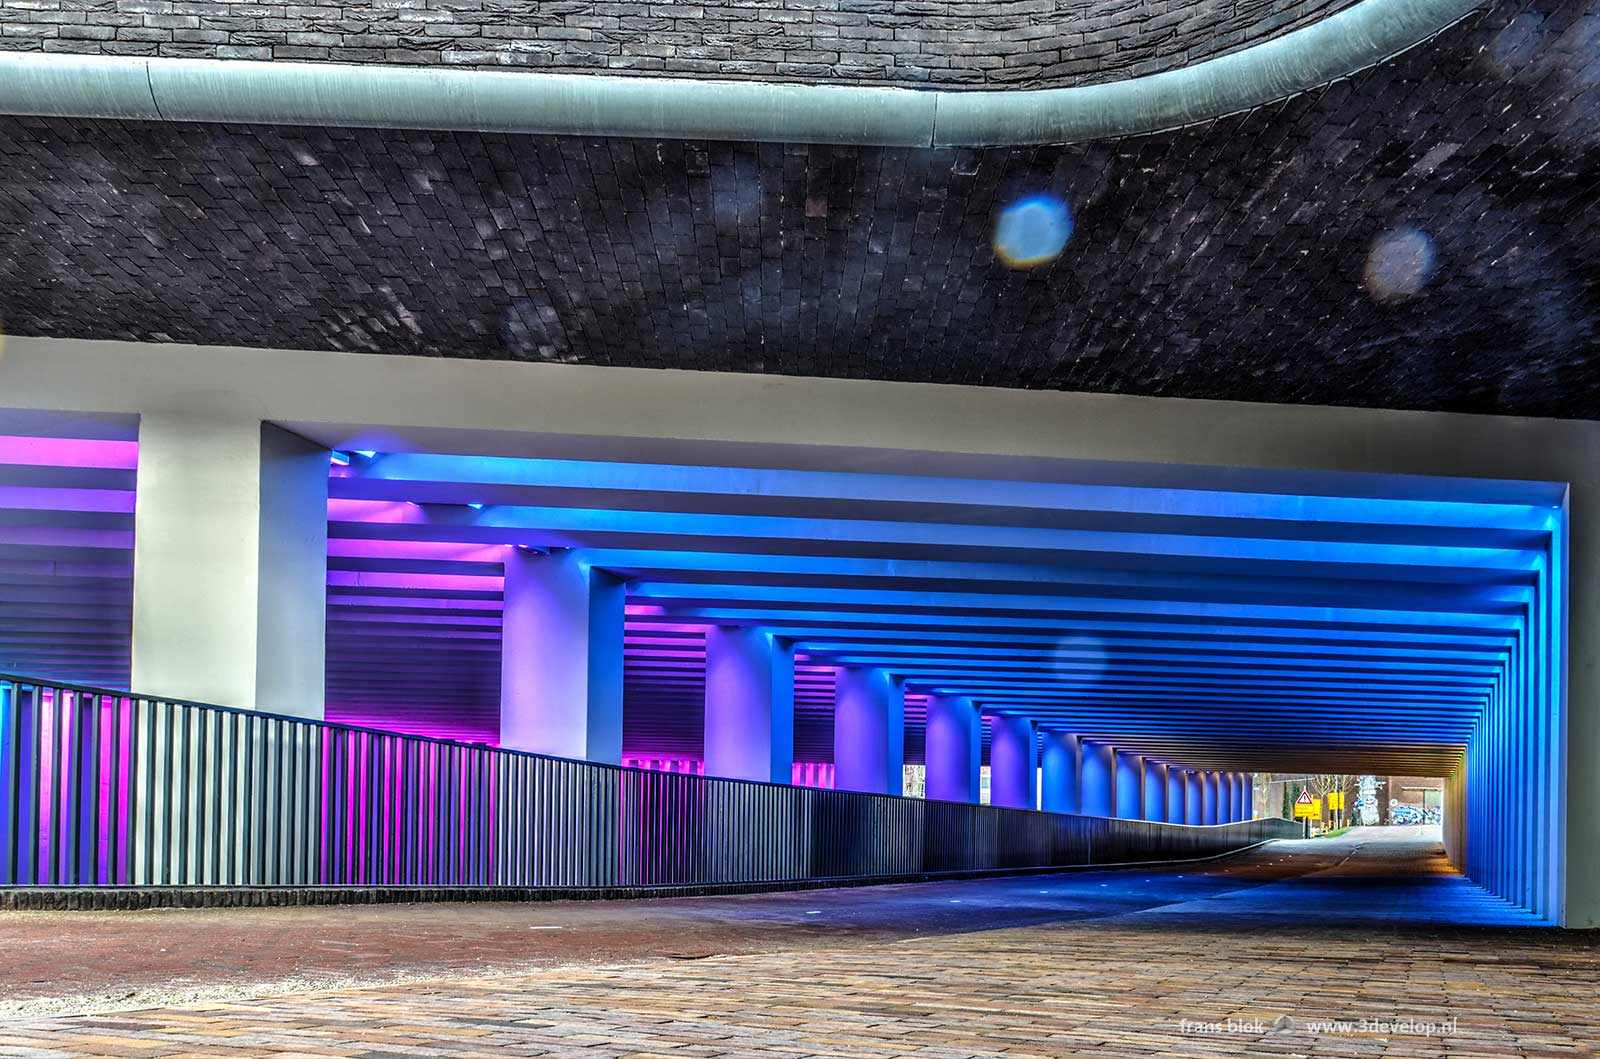 Photo of the entrance of the Marstunnel in Zutphen from the side of the city centre, with the light art by Herman Kuijer in blue and purple